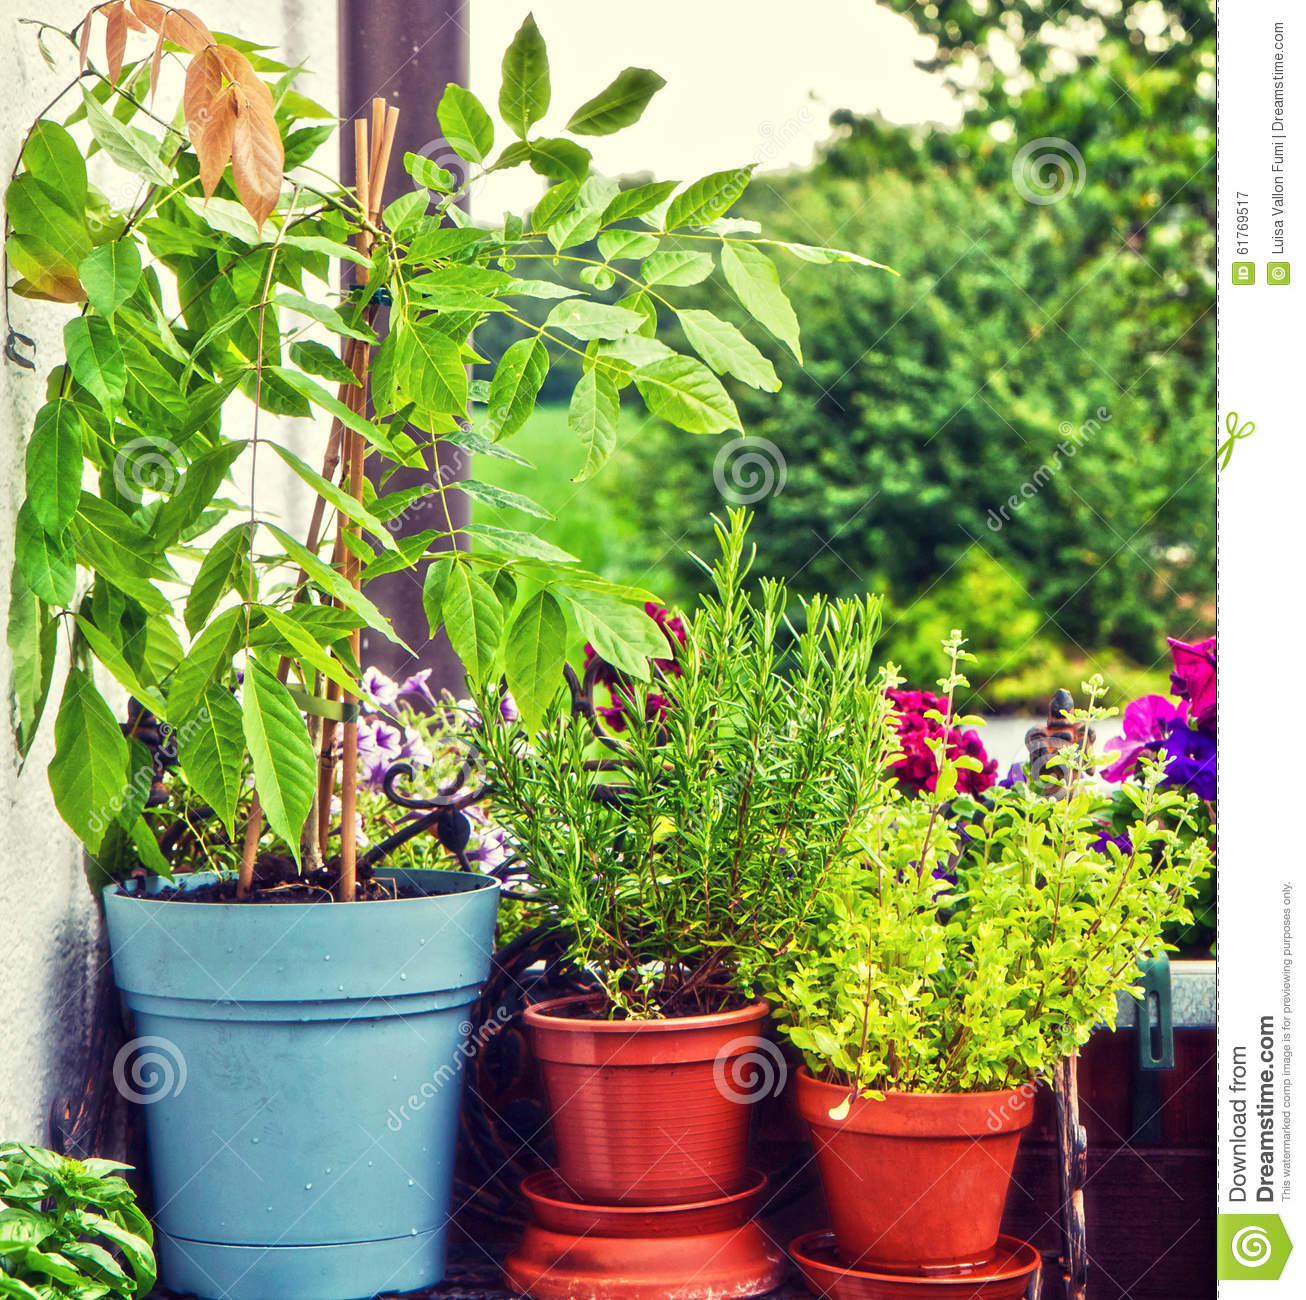 Gardening at home on the balcony pots with herbs and wisteria  Gardening At  Home On. Gardening At Home In Pots  universalcouncil info